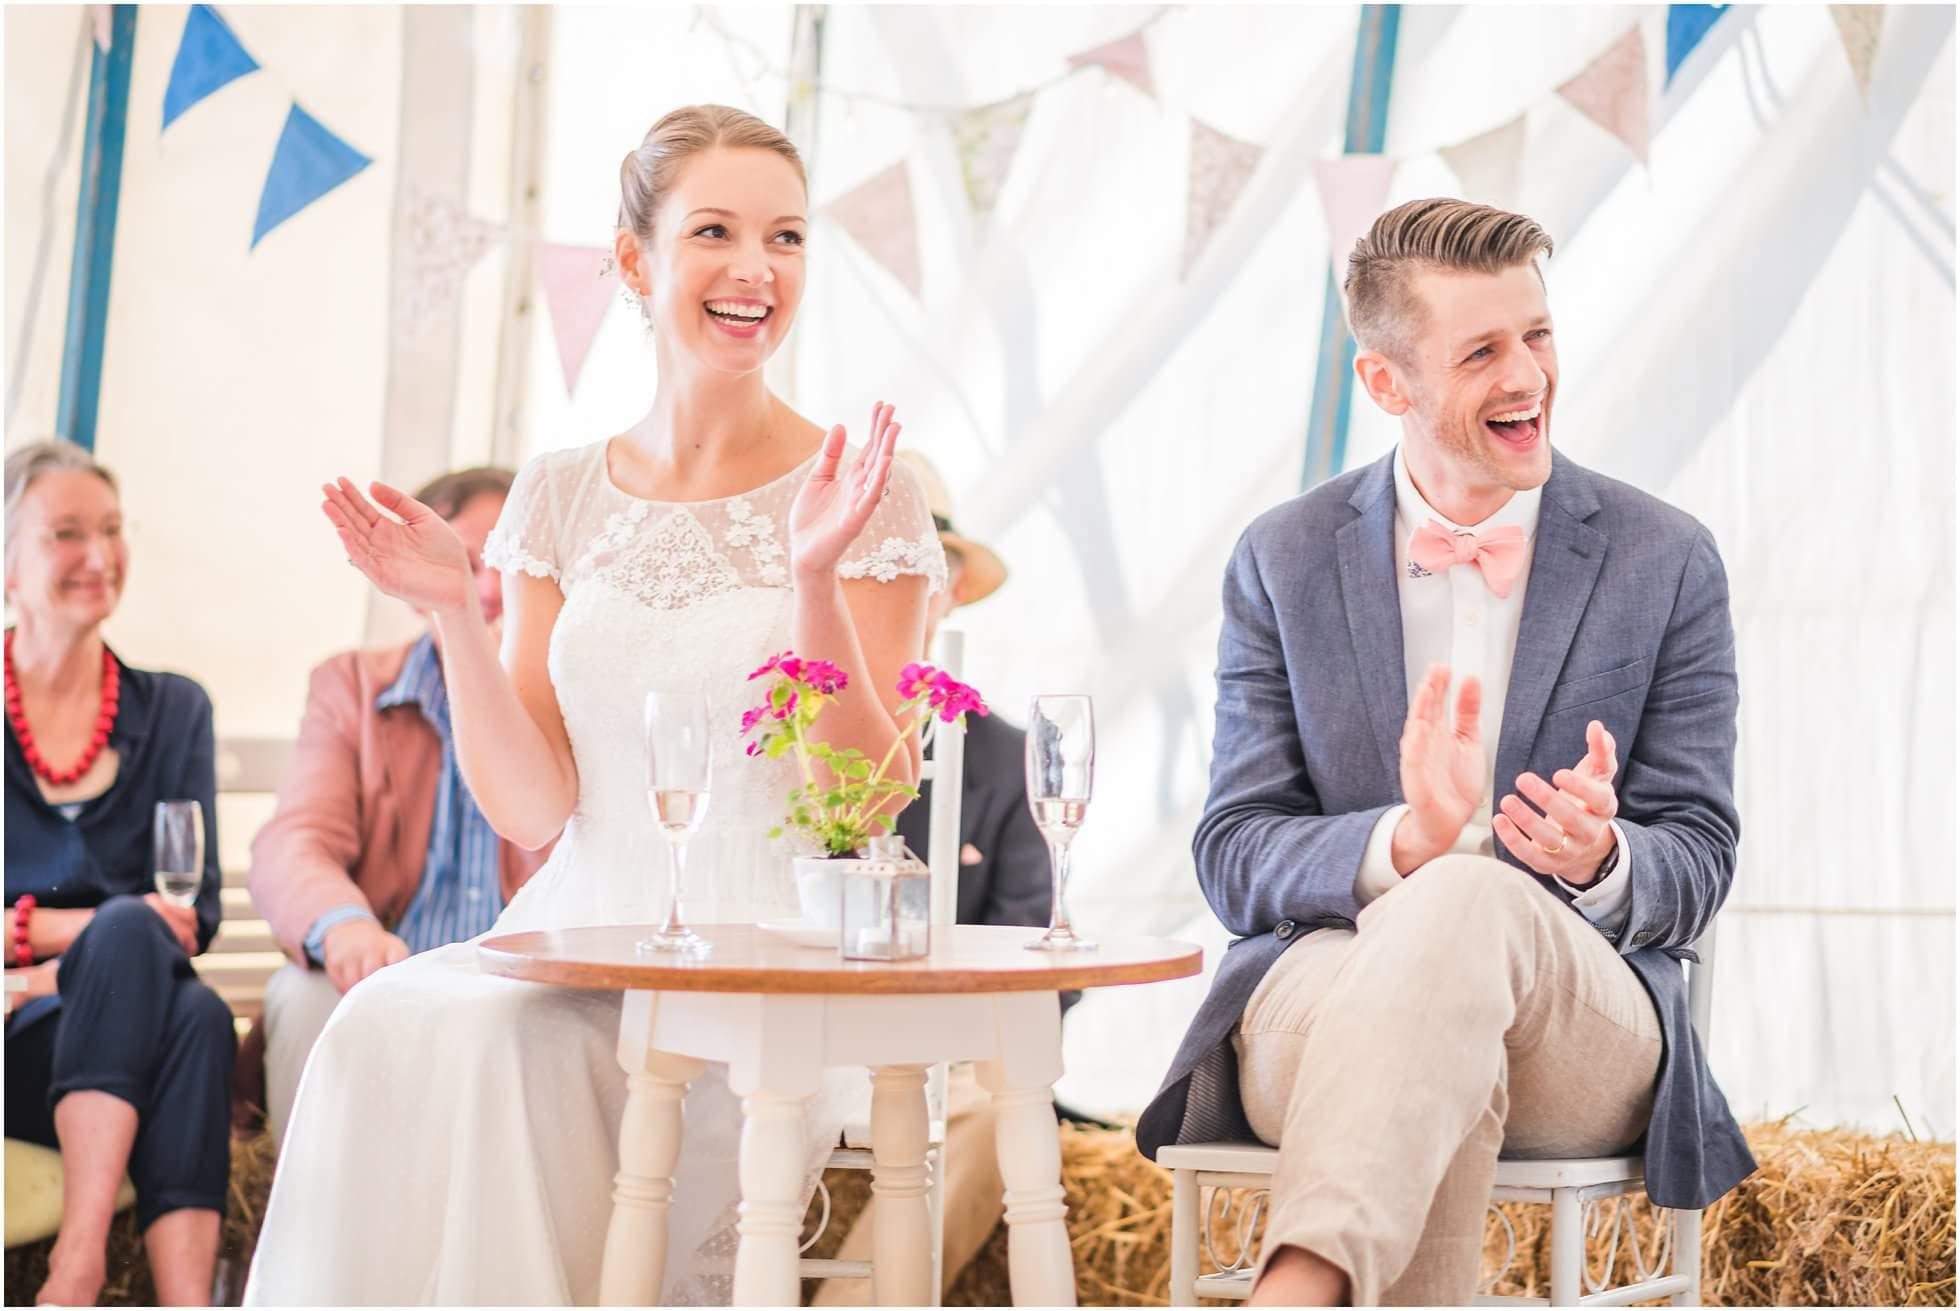 Fun and laughter - the bride and groom during the speeches